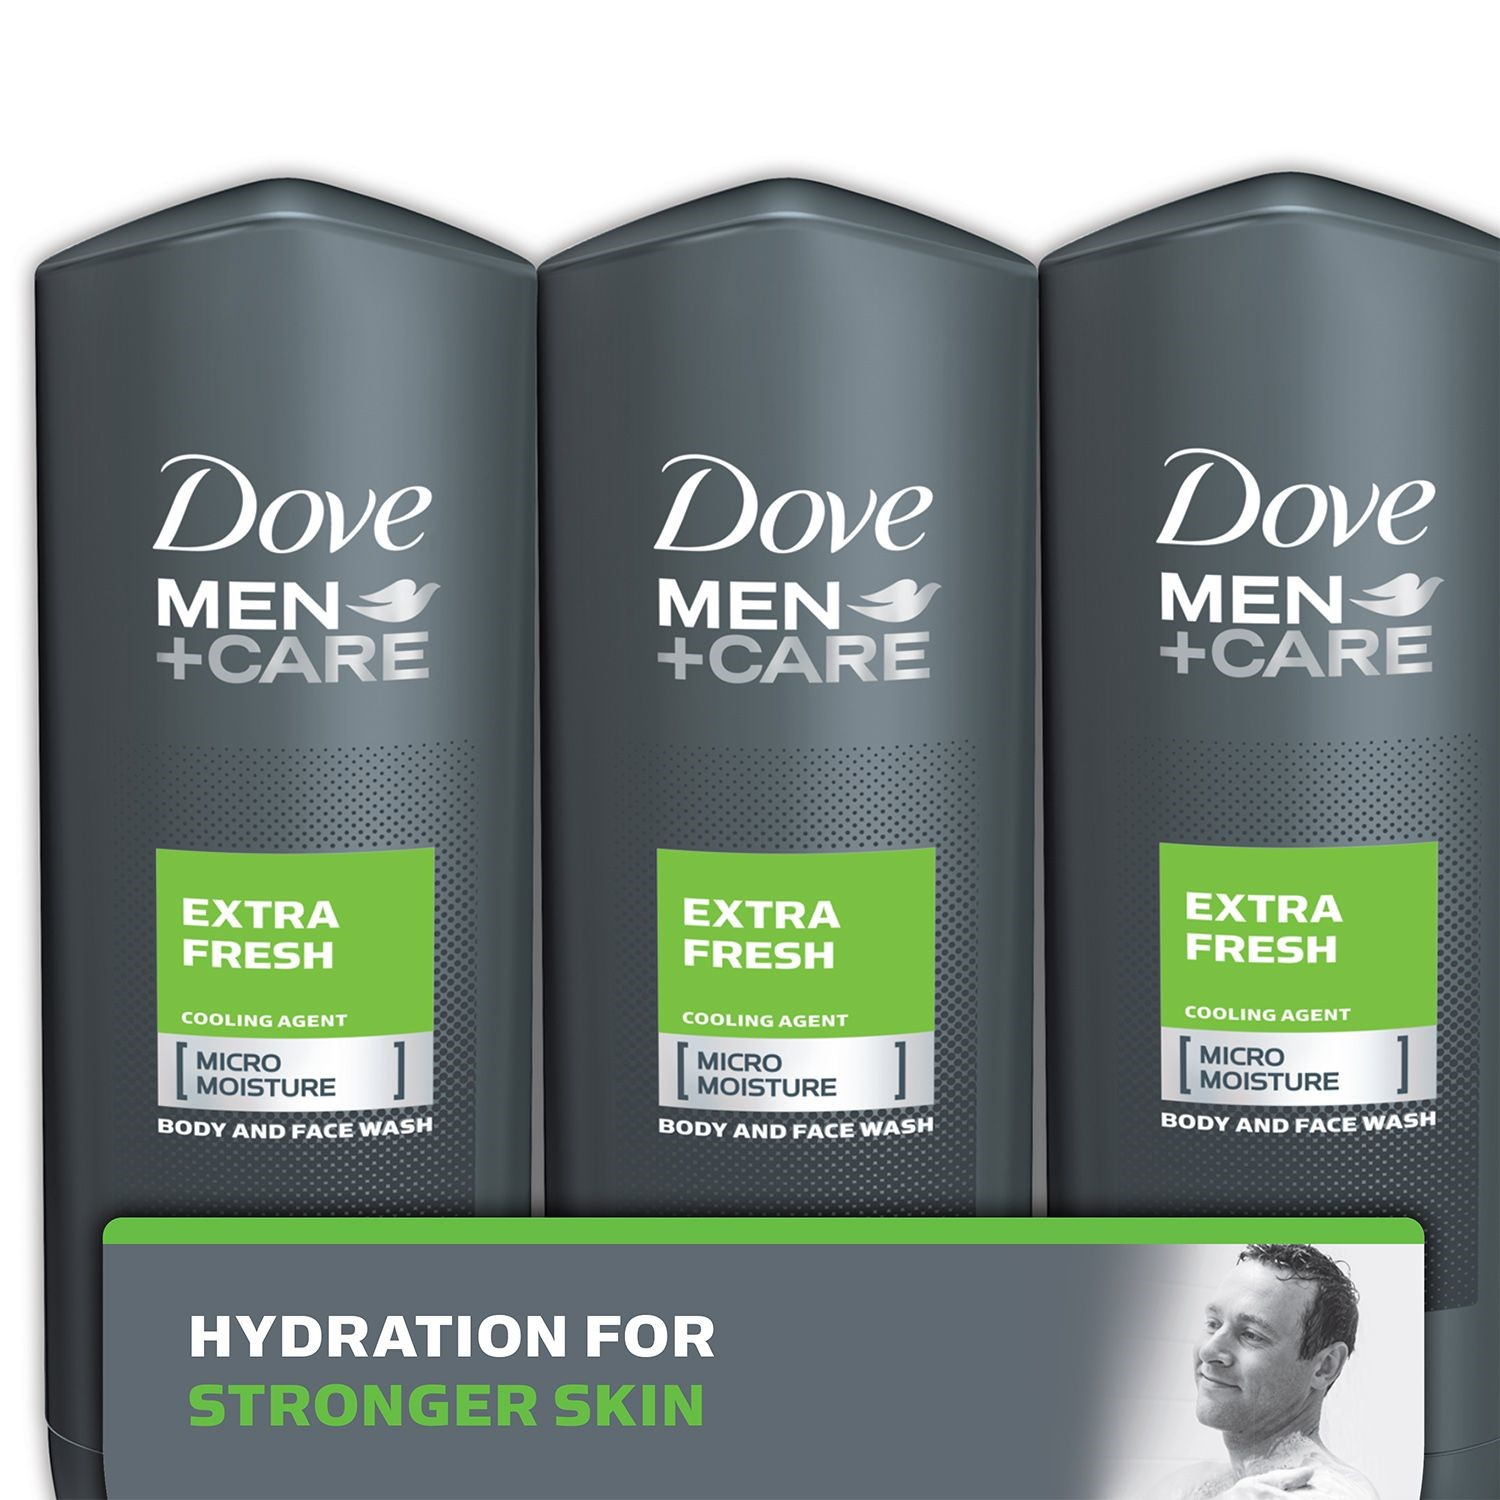 Dove men care body and face wash coupons